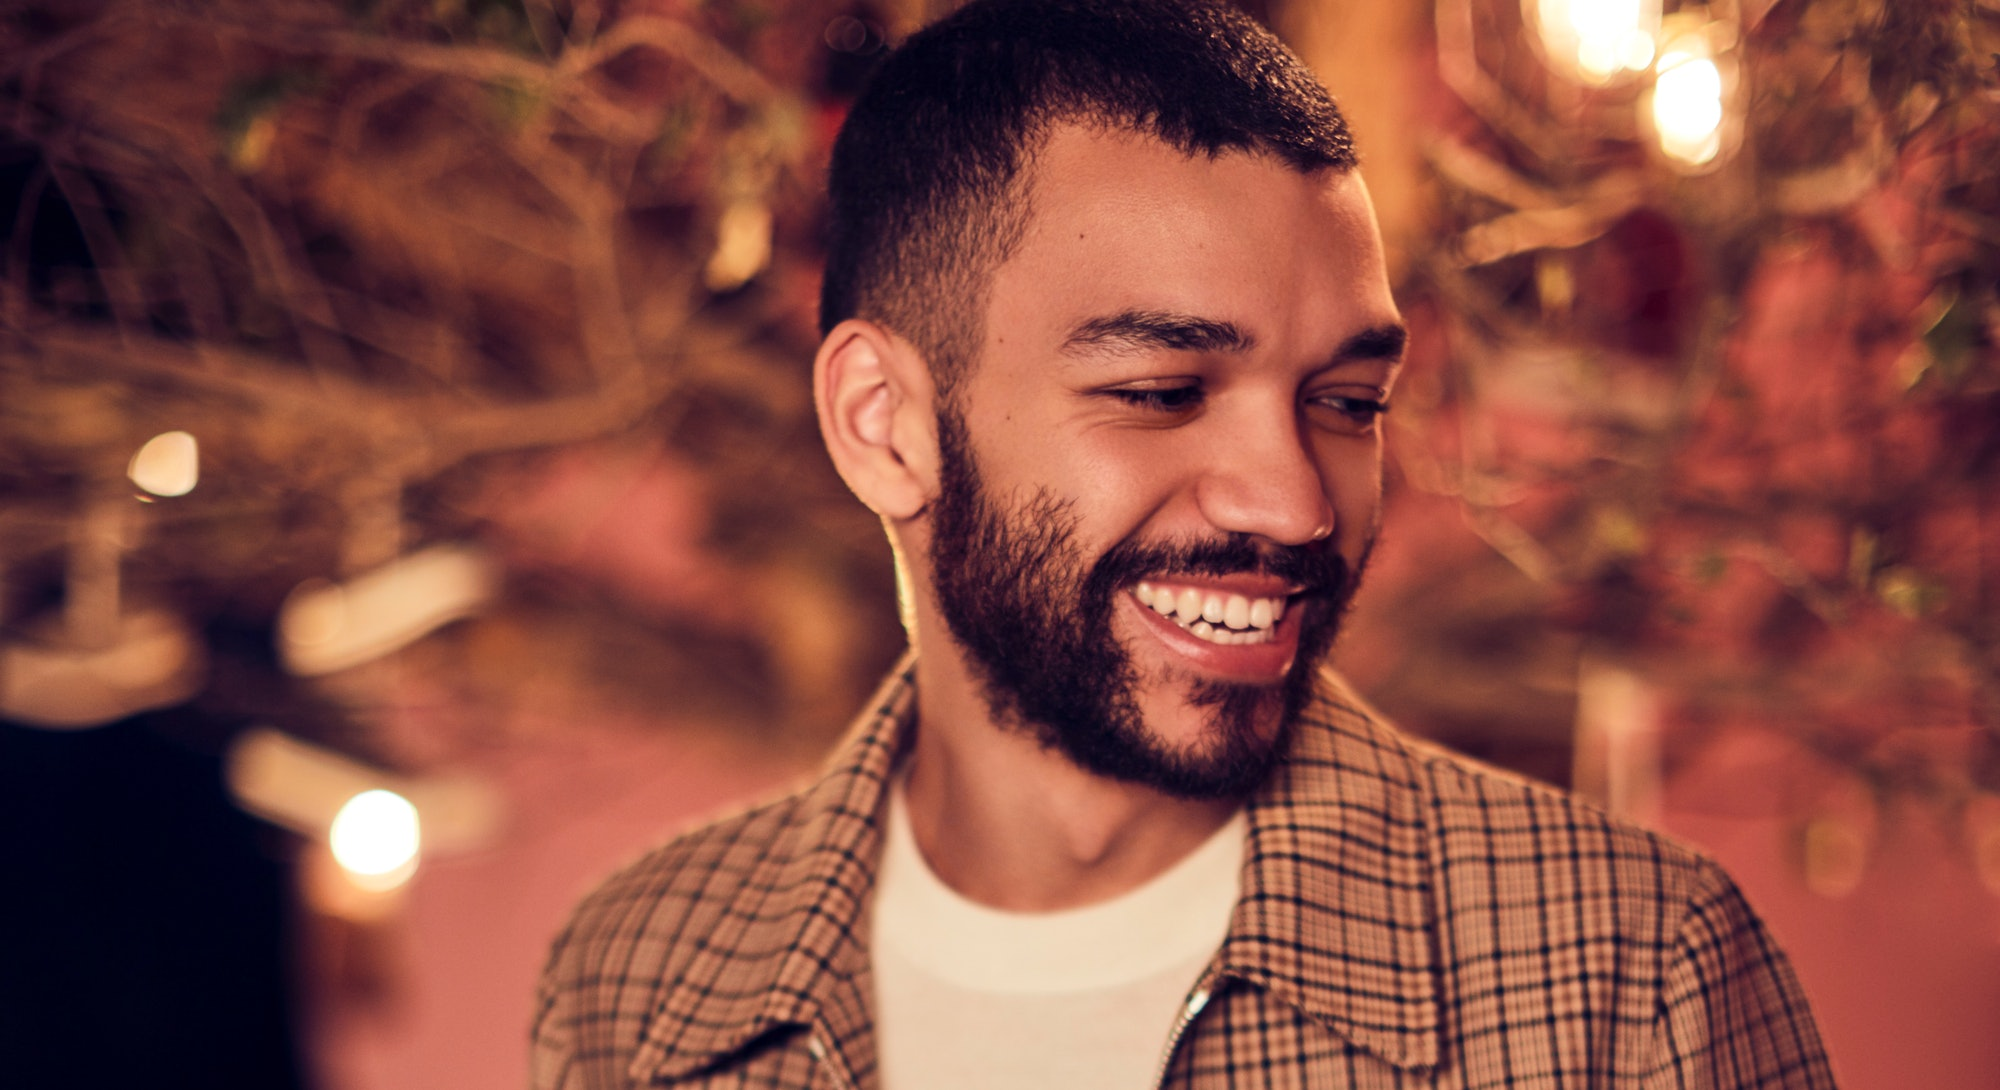 Justice Smith in plaid jacket